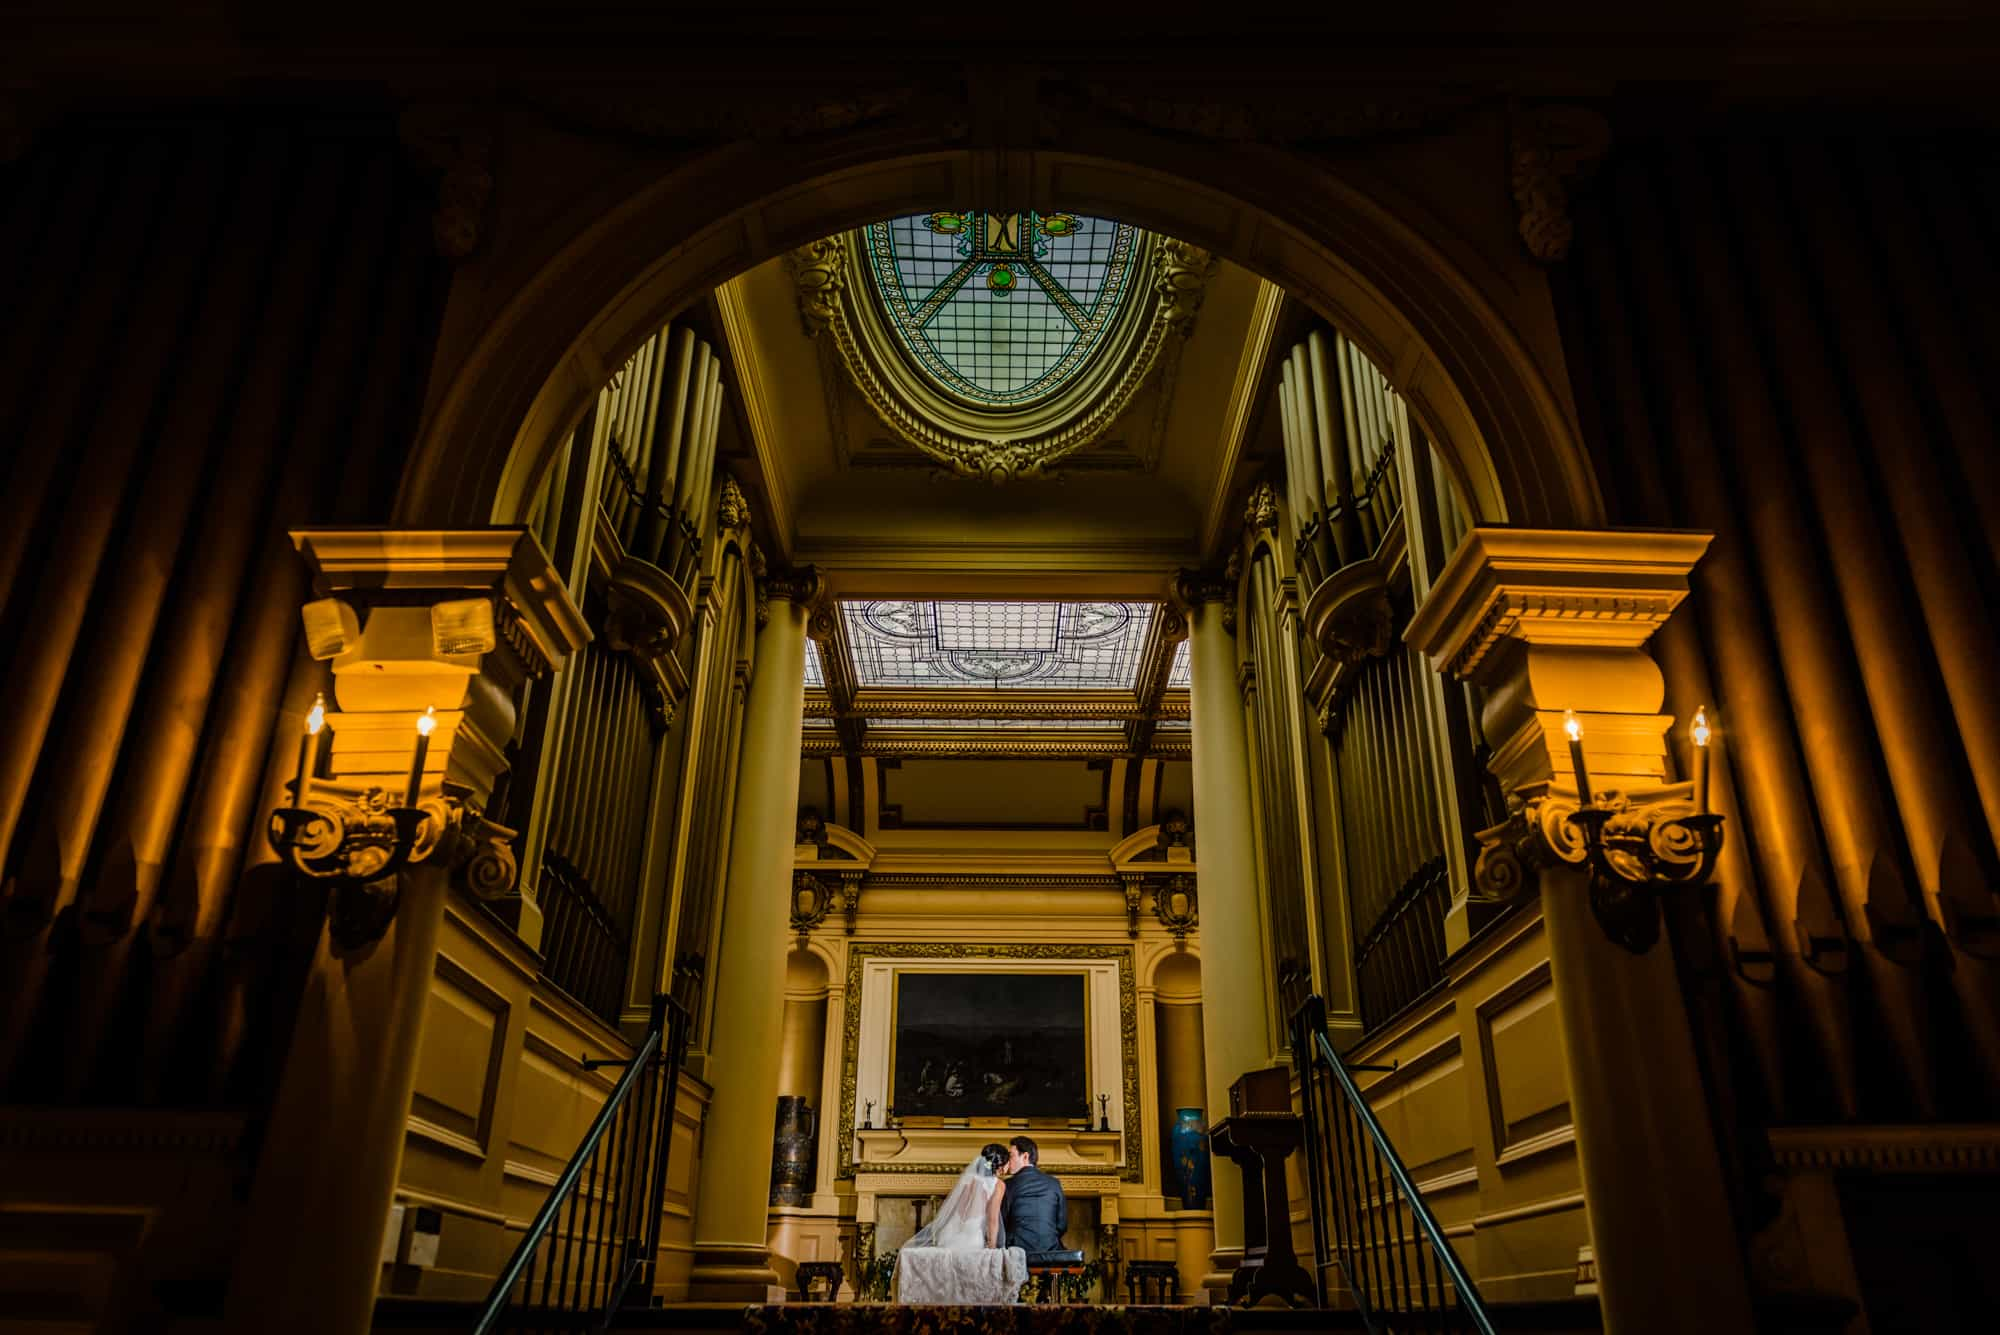 Bride and groom in the library of the Glen Foerd Mansion